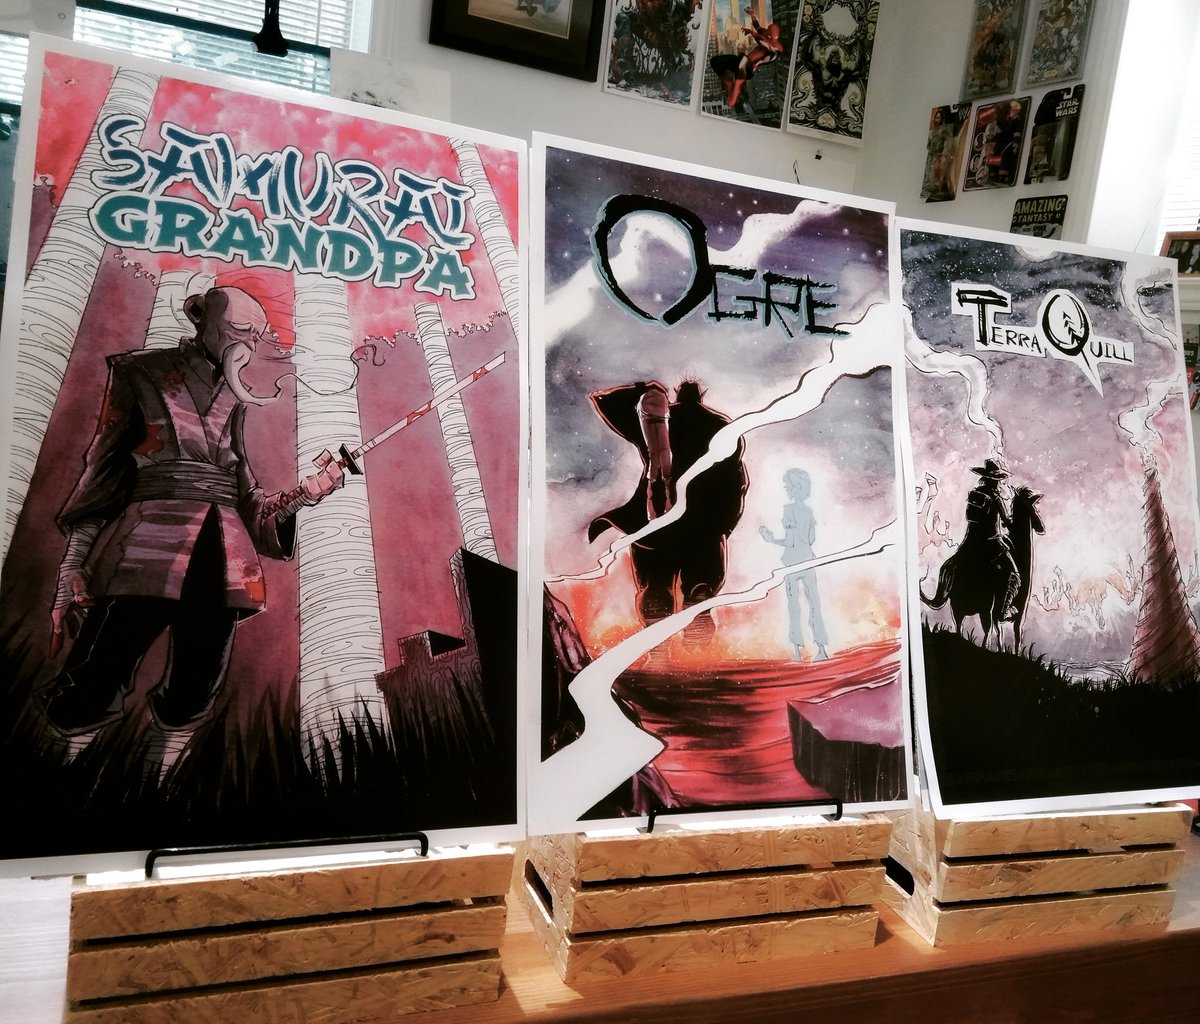 Fan Expo Canada is tomorrow! I'll be there all weekend at A456 with books, original art pages, sketches, and a small batch of 11x17 cover prints from the last few books. Also high fives. Lots of high fives. #makecomics @FANEXPOCANADA #FANEXPOCanada<br>http://pic.twitter.com/1jBZRvX7t3